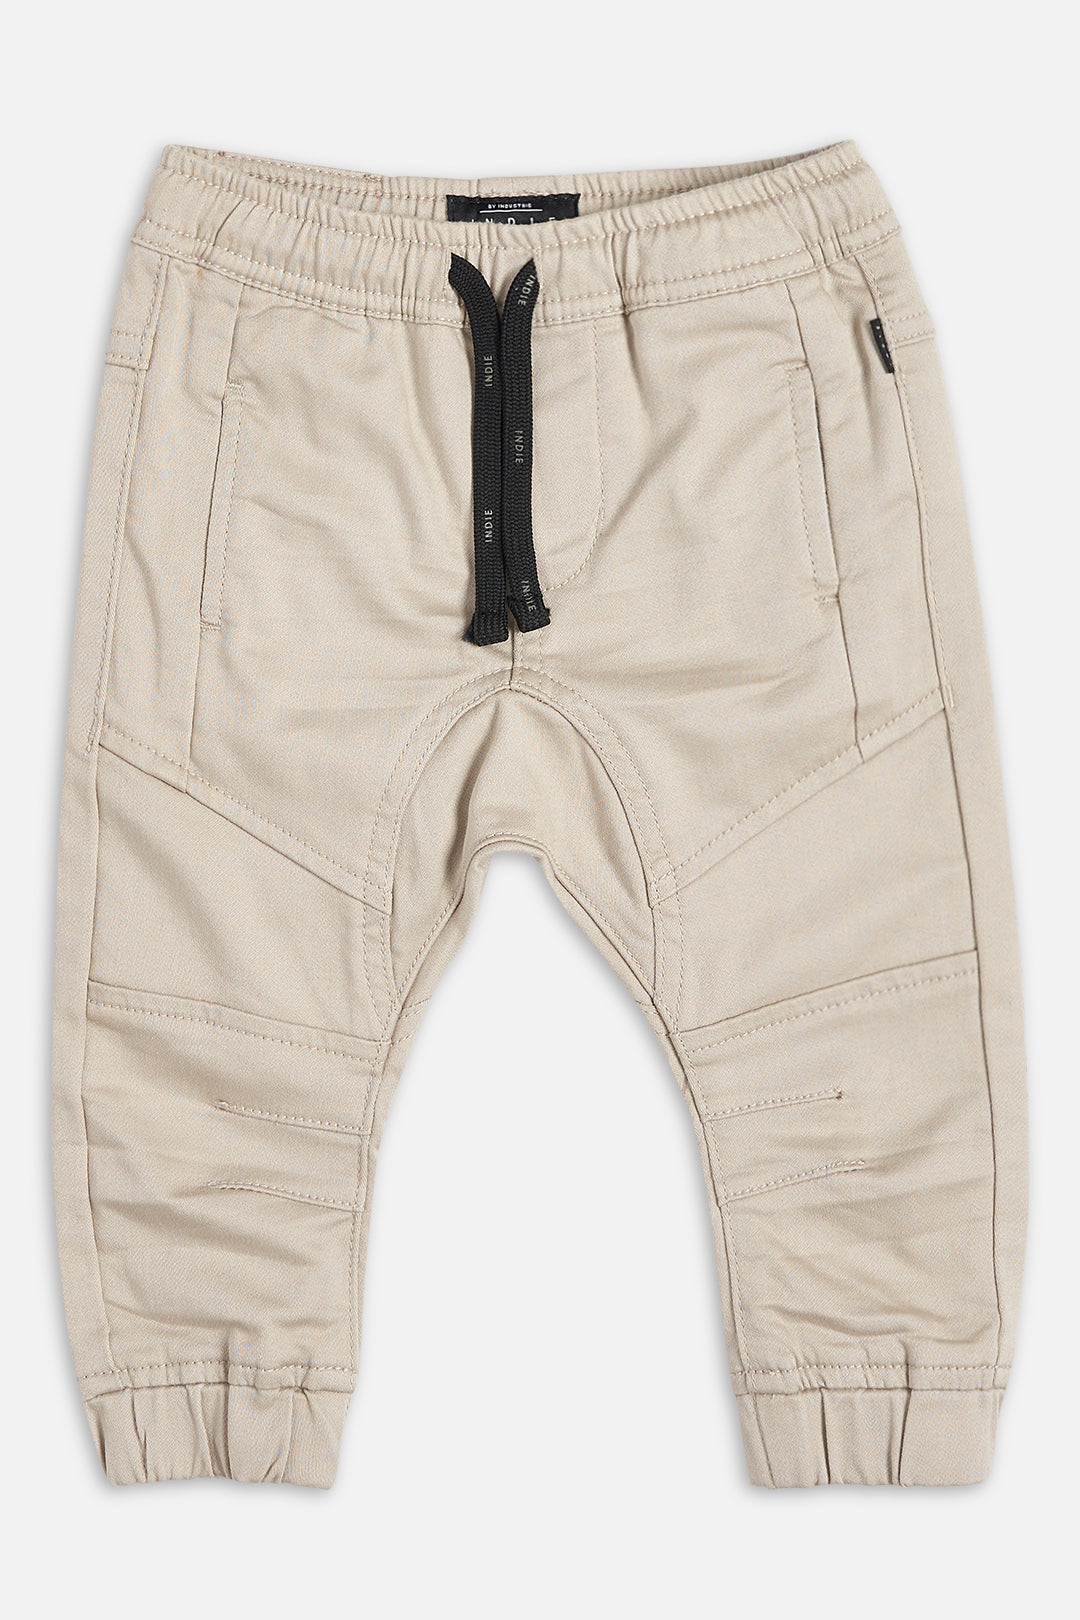 S20 Arched Drifter Pant - Stone